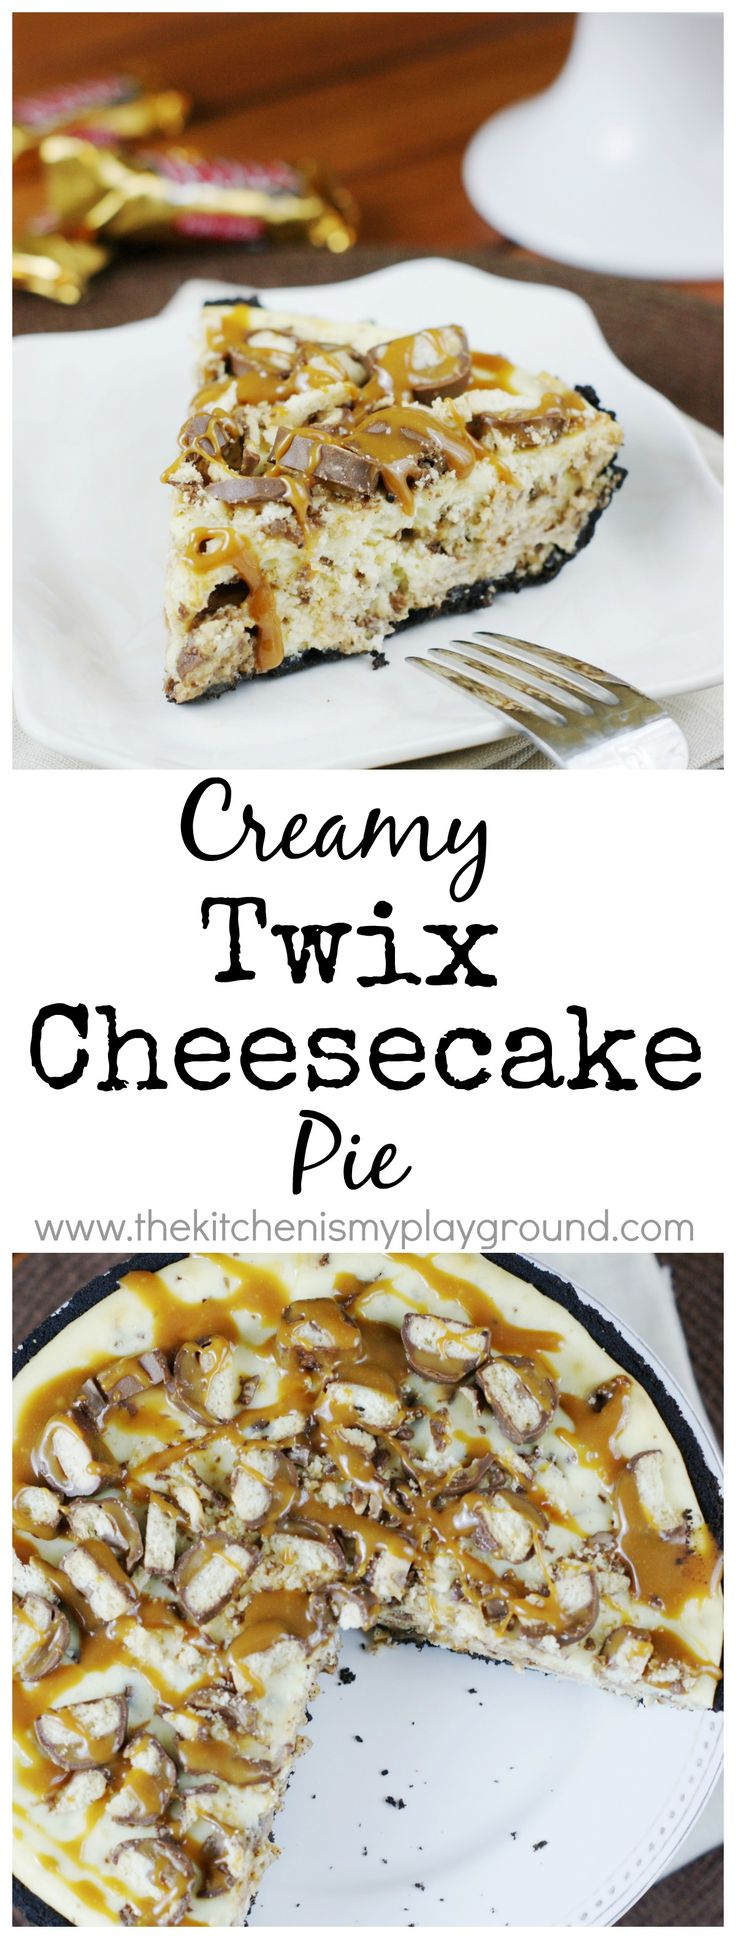 Best 25+ Twix cake ideas on Pinterest | Butternut candy ...